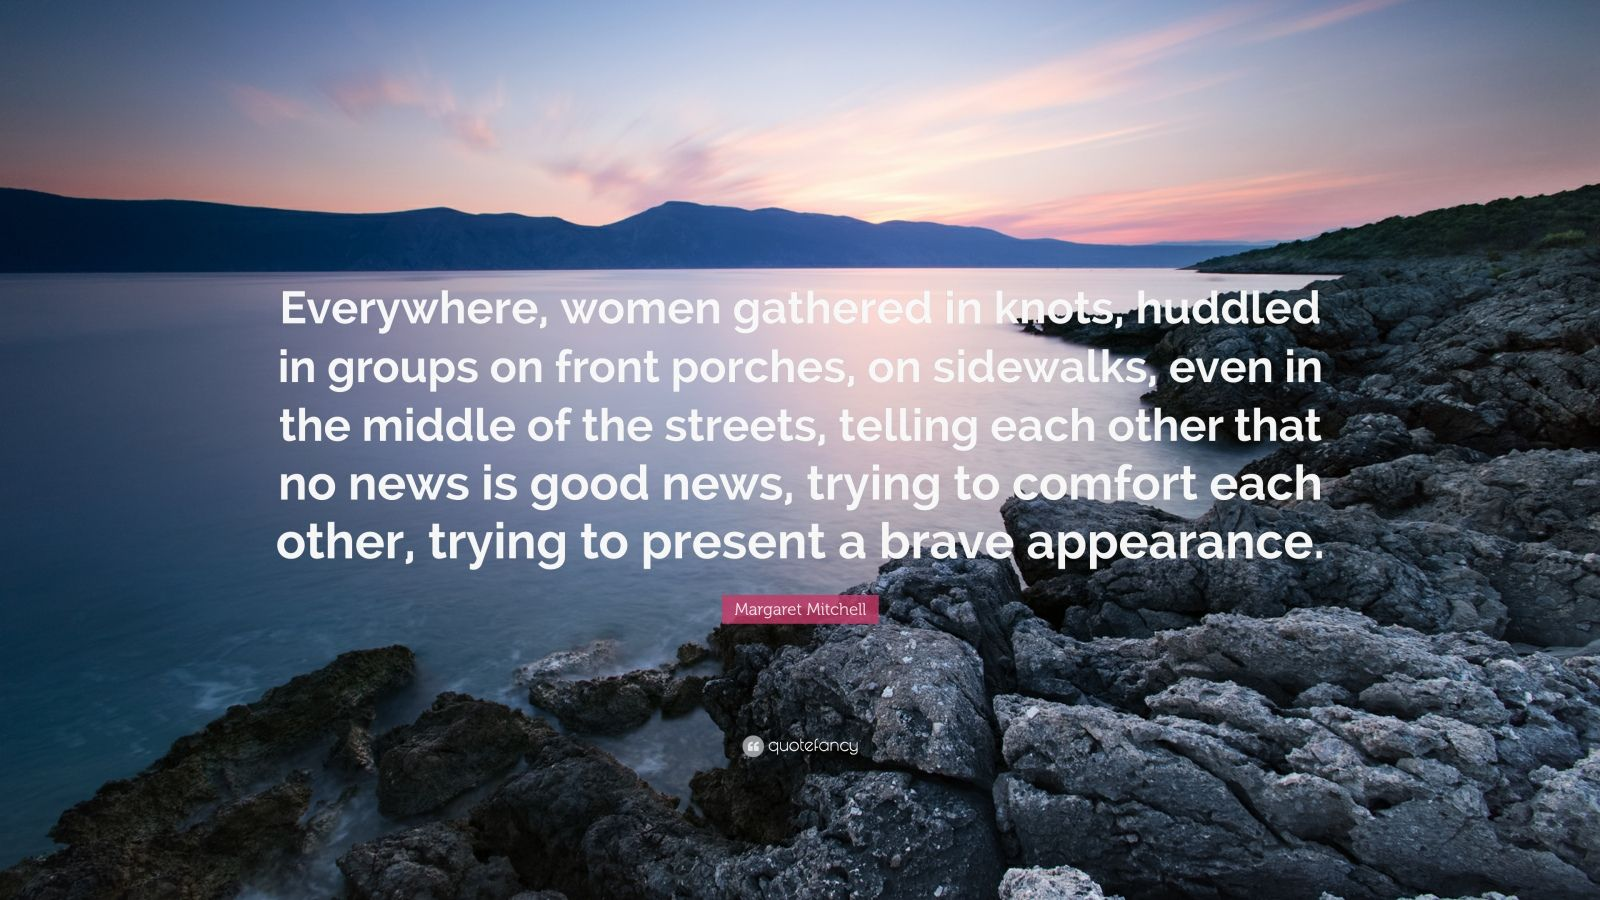 """Margaret Mitchell Quote: """"Everywhere, women gathered in knots, huddled in groups on front porches, on sidewalks, even in the middle of the streets, telling each other that no news is good news, trying to comfort each other, trying to present a brave appearance."""""""